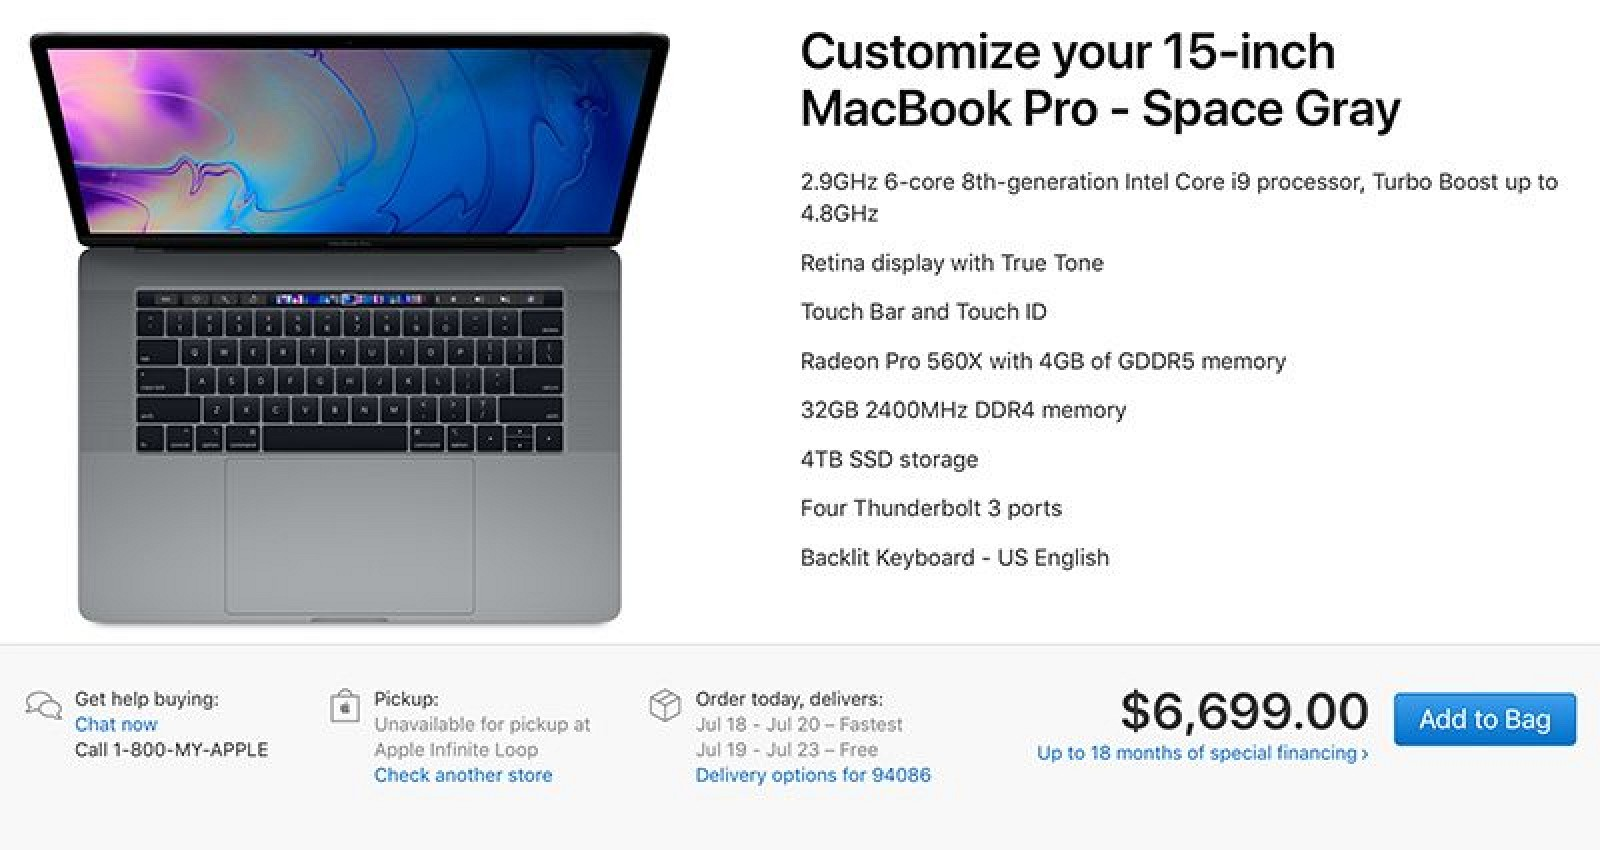 Maxed Out 15-Inch MacBook Pro Priced at $6,699 for 2.9GHz Chip, 32GB RAM and 4TB SSD